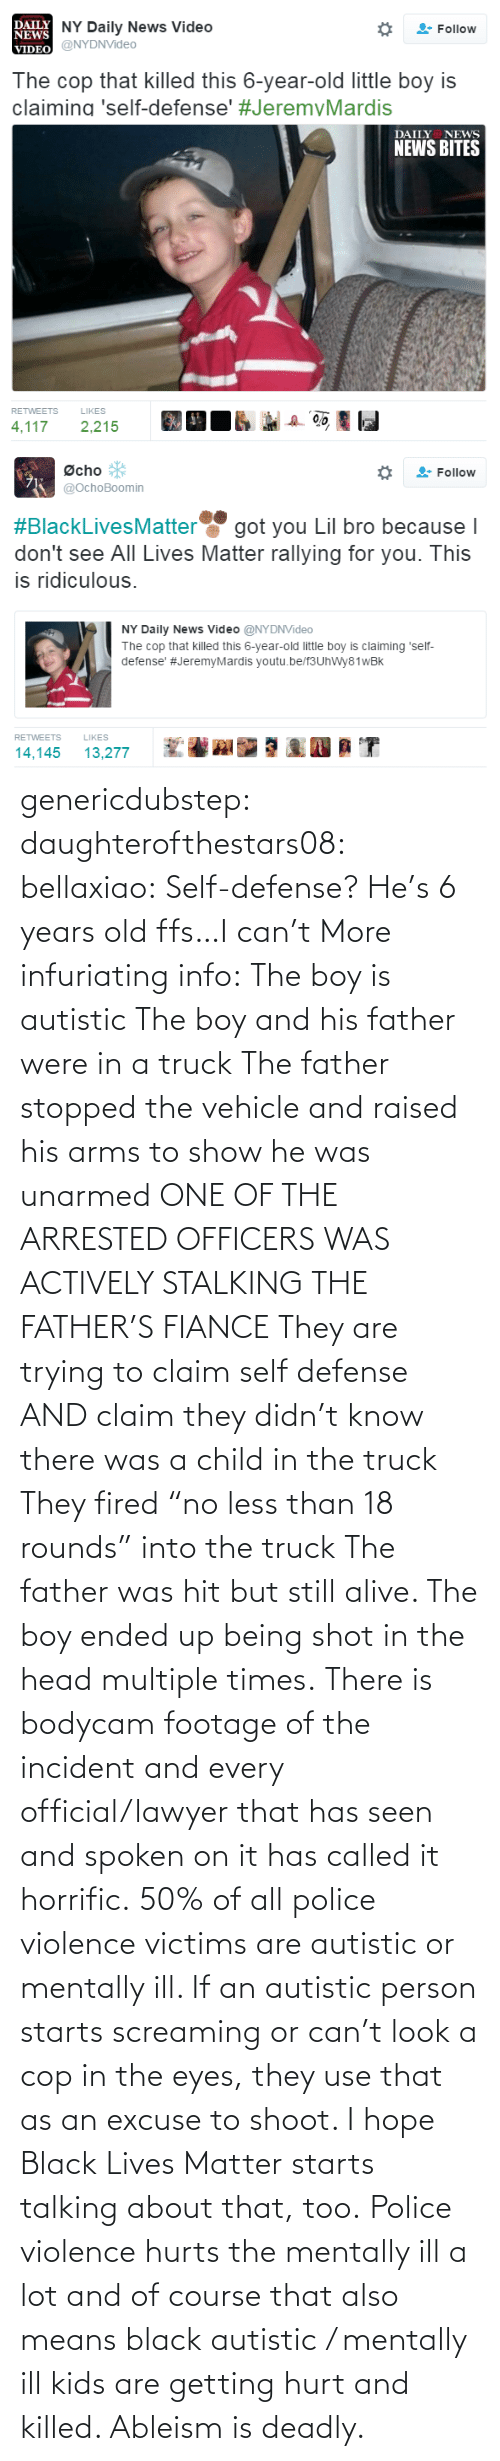 "there is: genericdubstep: daughterofthestars08:  bellaxiao:  Self-defense? He's 6 years old ffs…I can't  More infuriating info: The boy is autistic The boy and his father were in a truck The father stopped the vehicle and raised his arms to show he was unarmed ONE OF THE ARRESTED OFFICERS WAS ACTIVELY STALKING THE FATHER'S FIANCE They are trying to claim self defense AND claim they didn't know there was a child in the truck They fired ""no less than 18 rounds"" into the truck The father was hit but still alive. The boy ended up being shot in the head multiple times. There is bodycam footage of the incident and every official/lawyer that has seen and spoken on it has called it horrific.  50% of all police violence victims are autistic or mentally ill. If an autistic person starts screaming or can't look a cop in the eyes, they use that as an excuse to shoot. I hope Black Lives Matter starts talking about that, too. Police violence hurts the mentally ill a lot and of course that also means black autistic / mentally ill kids are getting hurt and killed. Ableism is deadly."